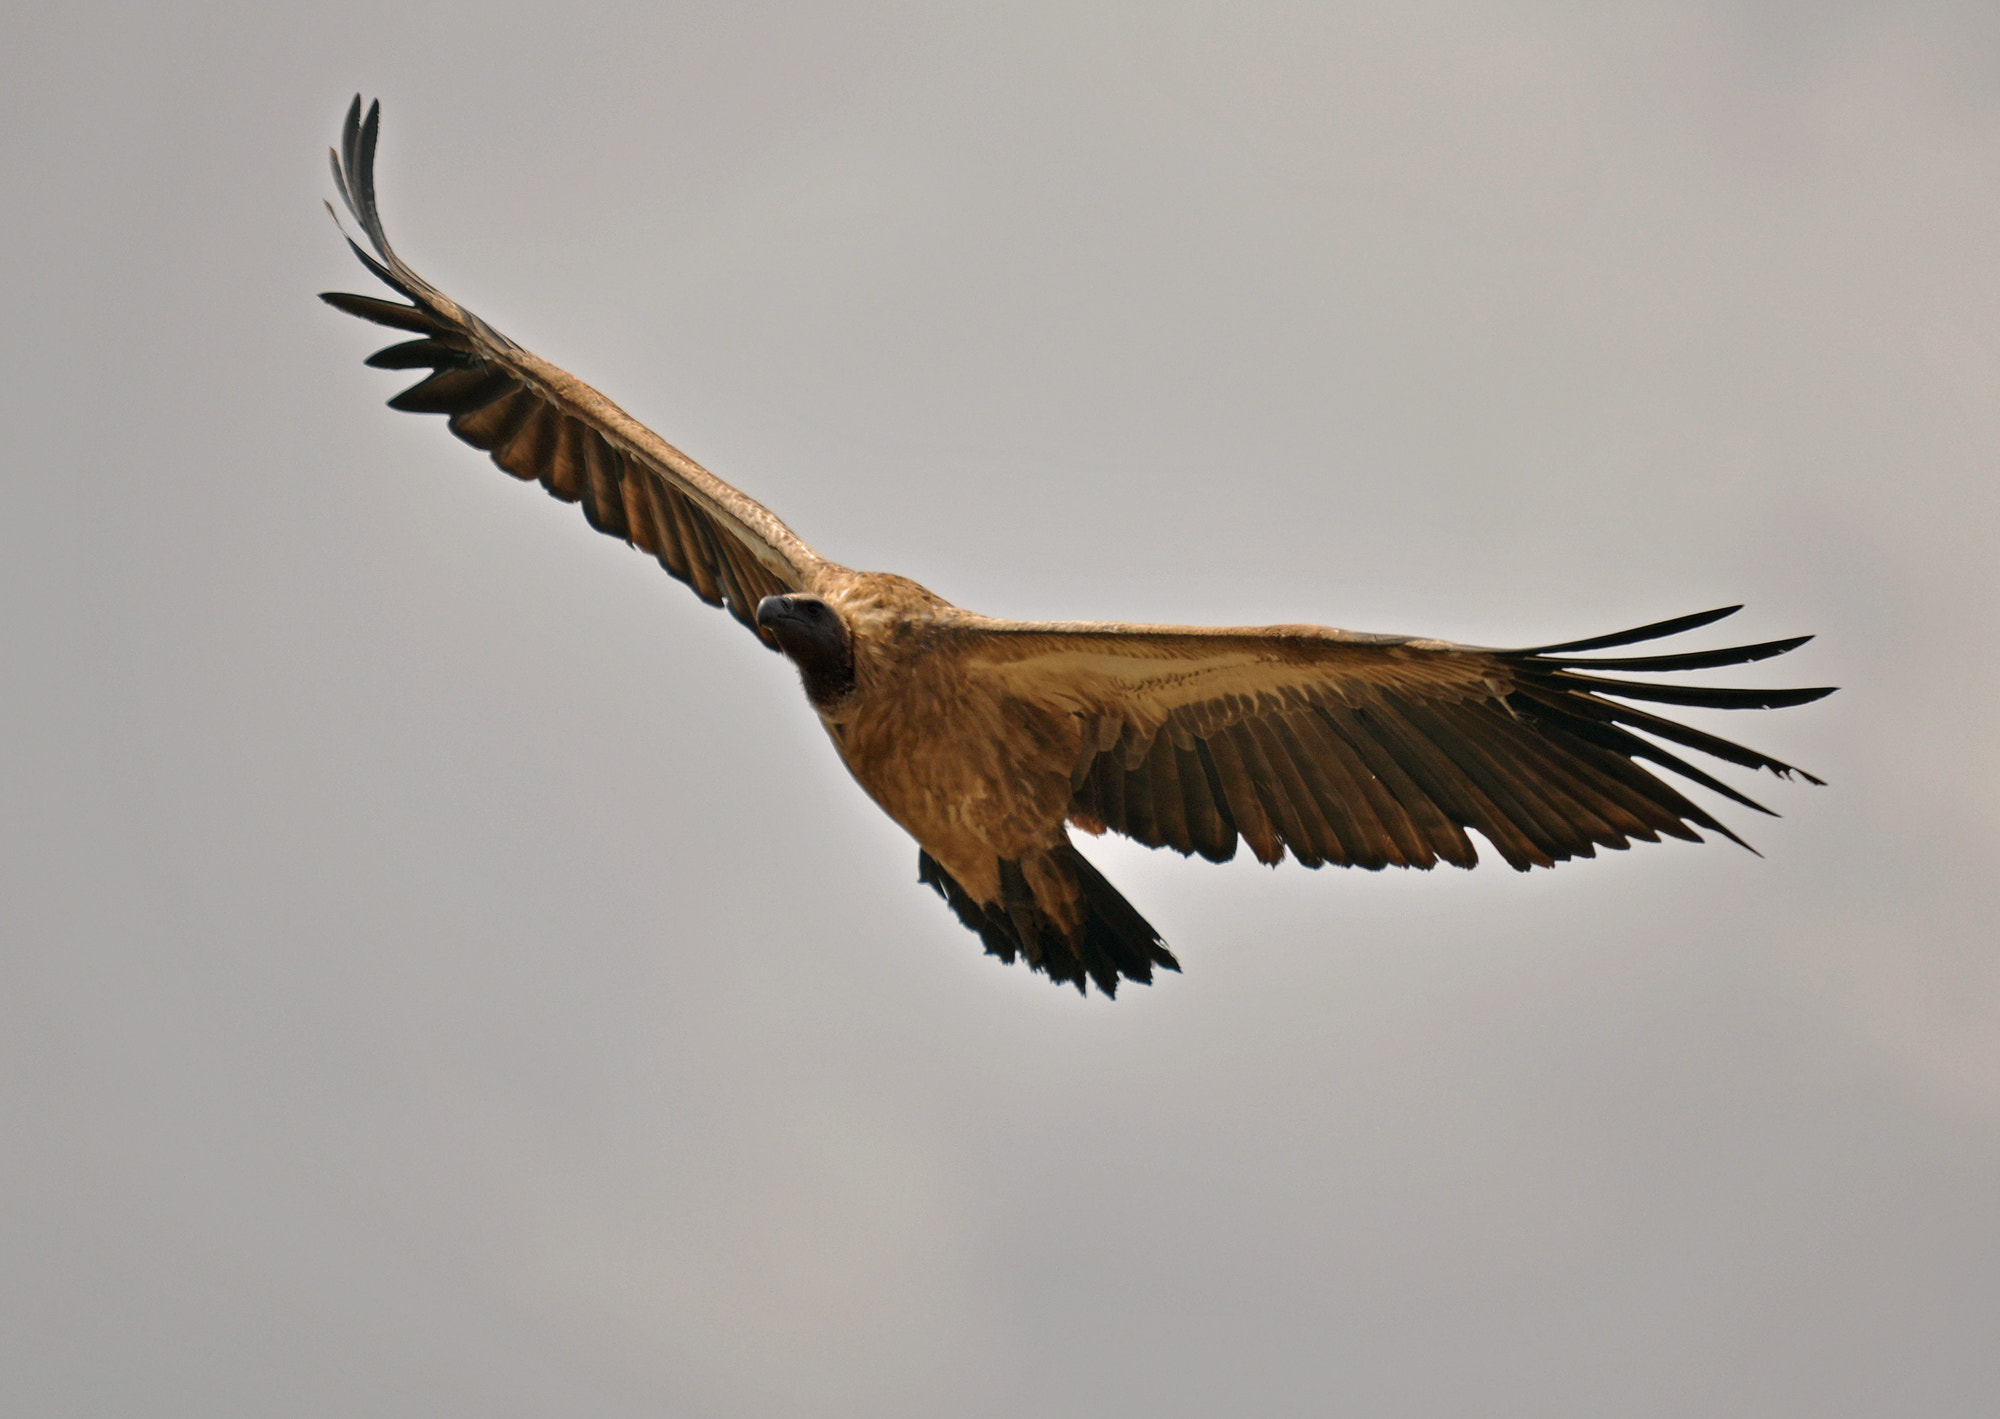 Photograph Swooping overhead by Graham Turner on 500px